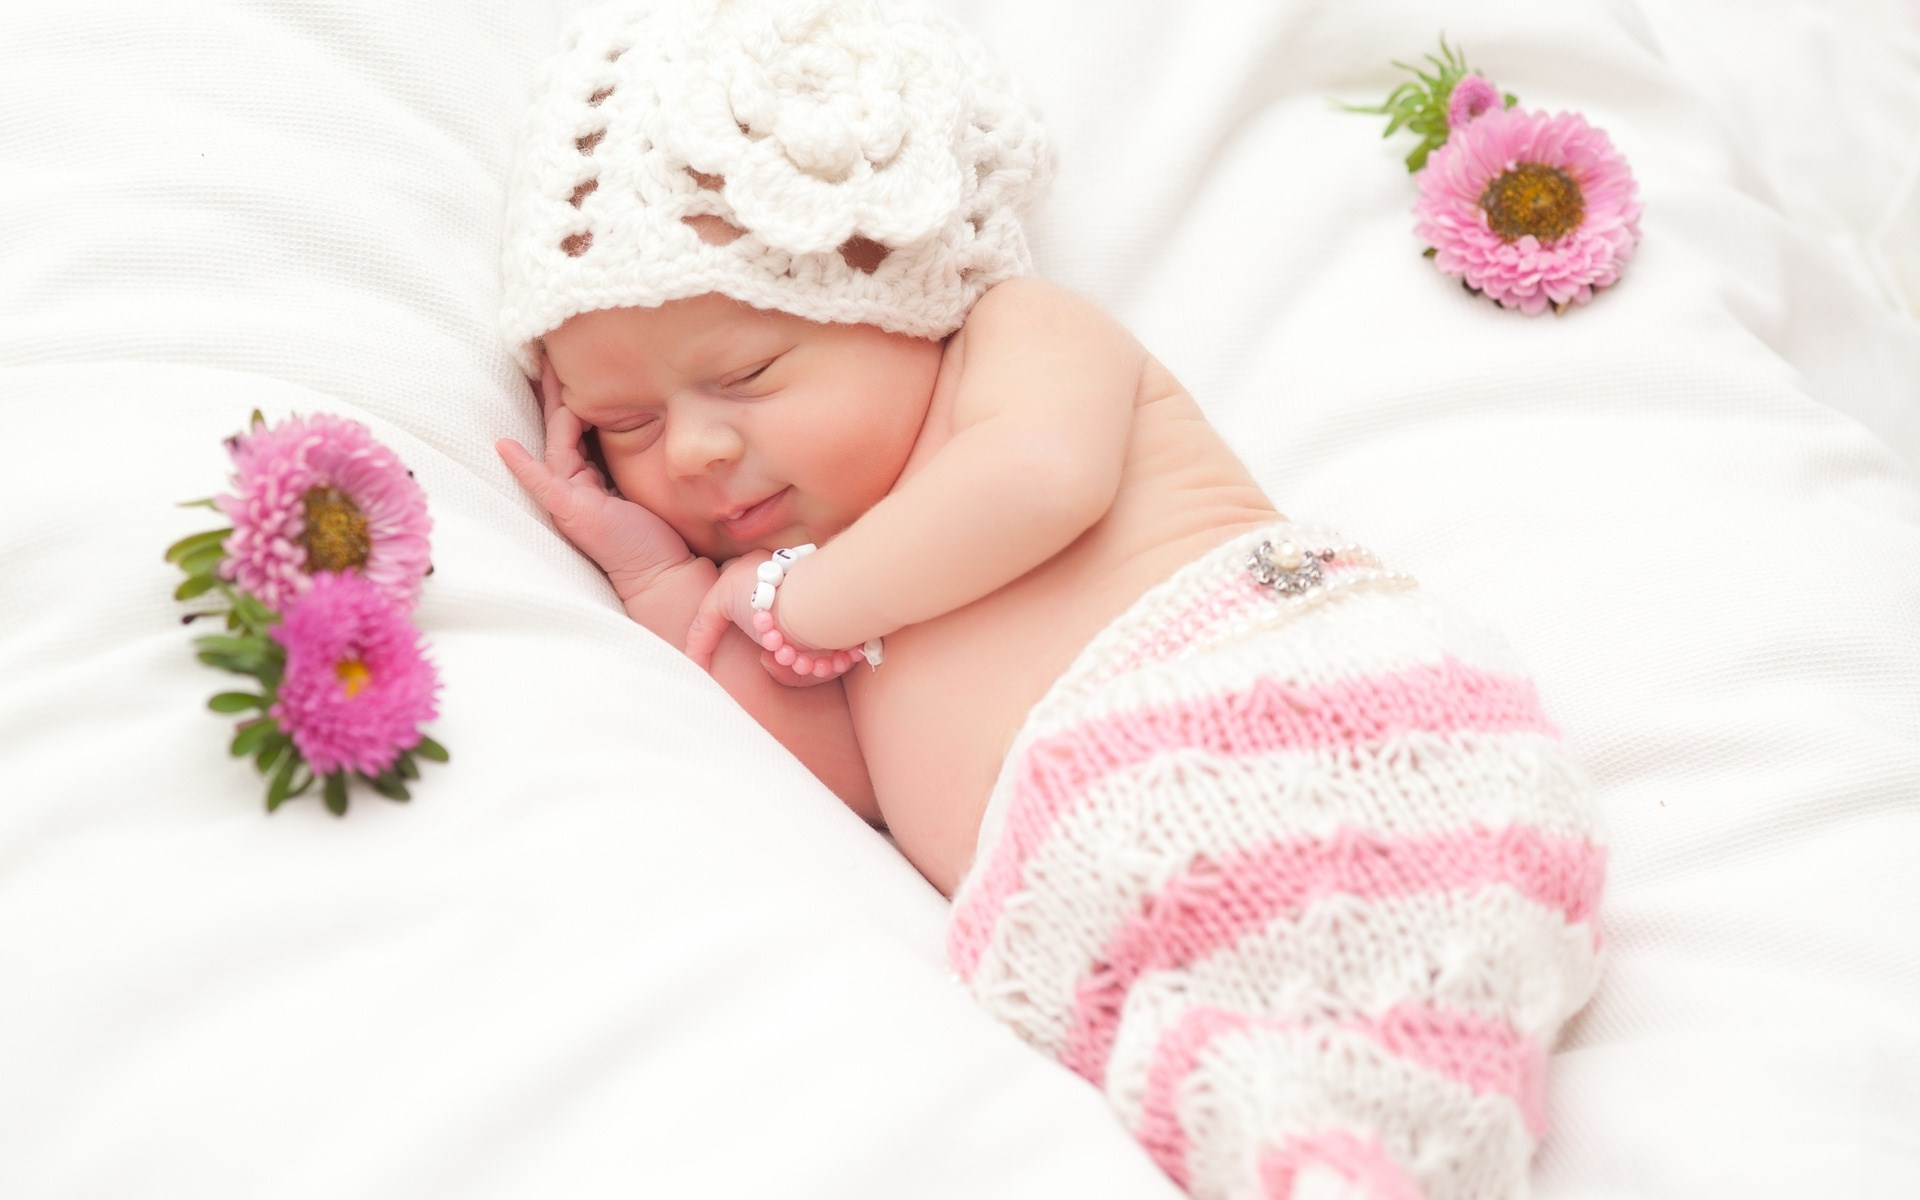 sleeping baby hd wallpaper photos